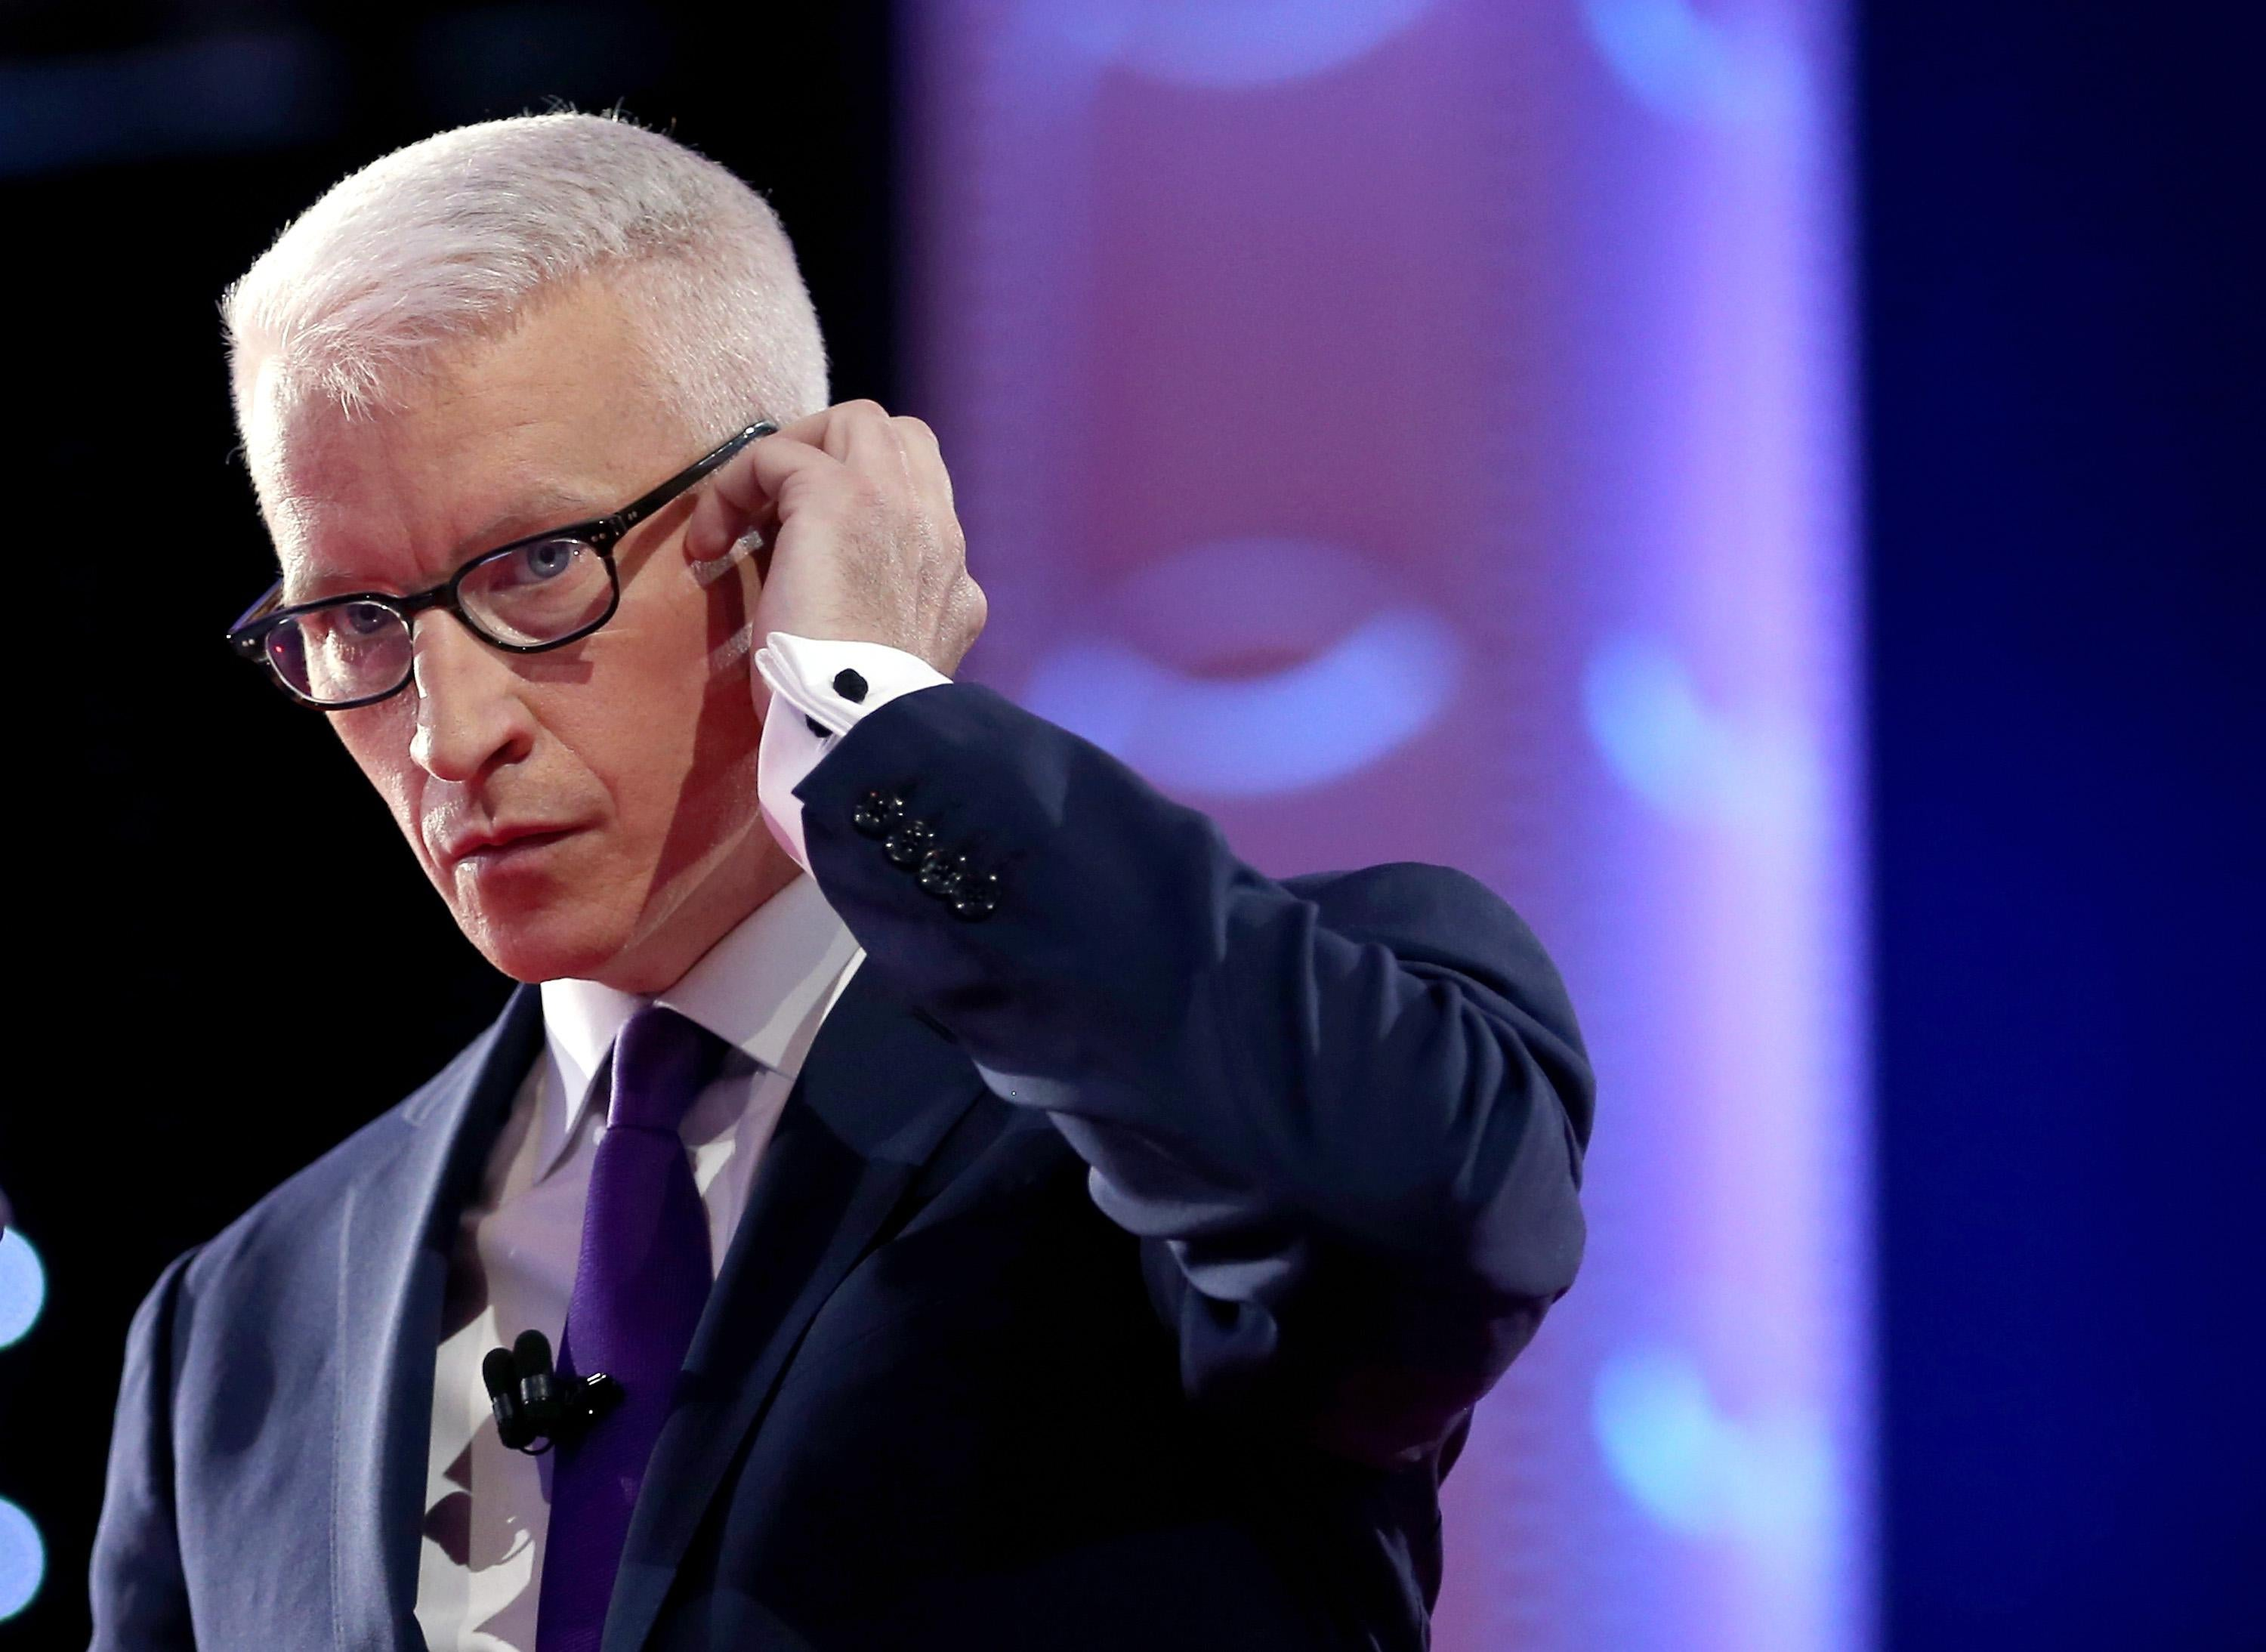 CNN anchor Anderson Cooper.